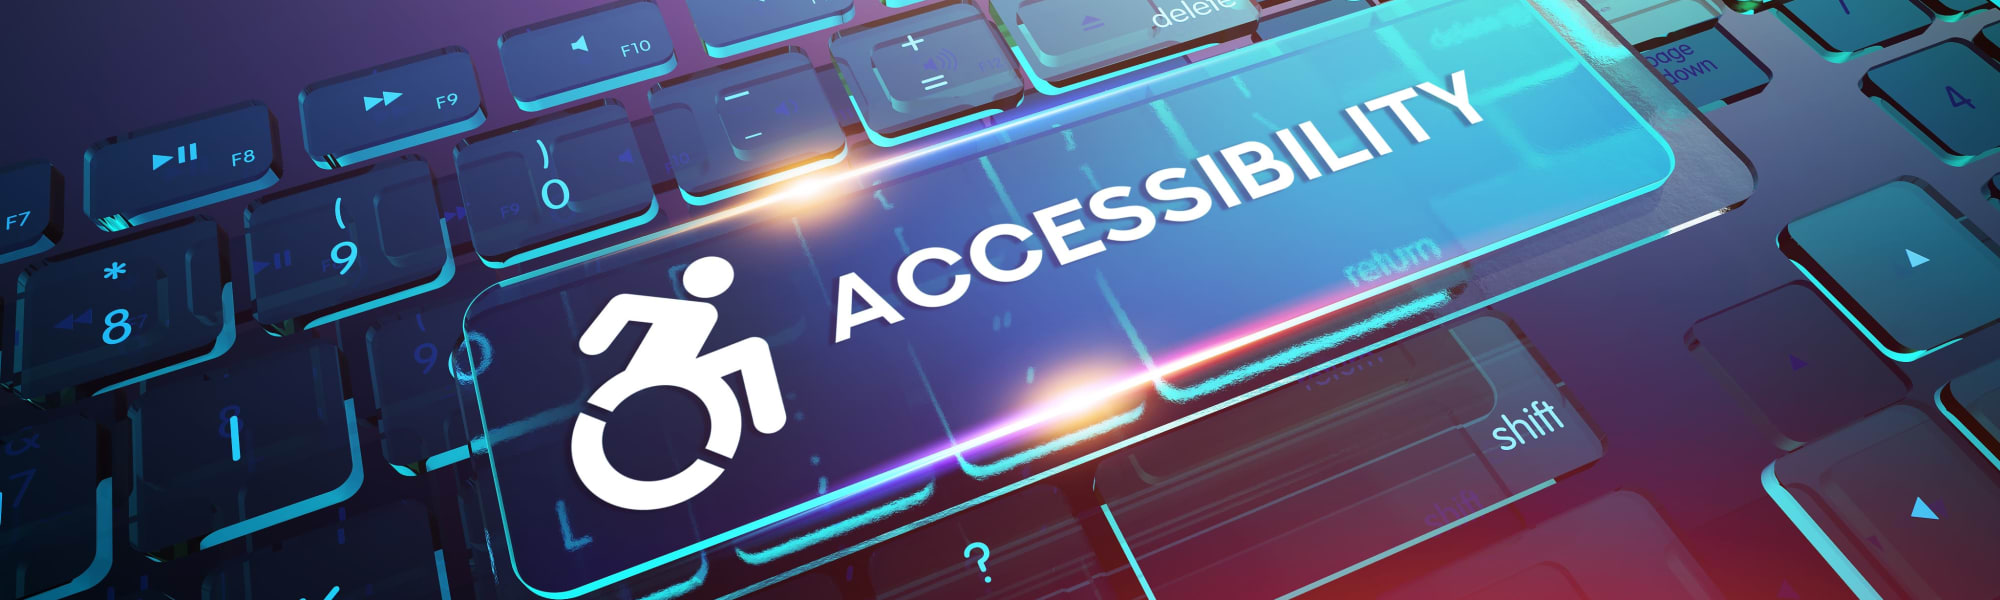 Accessibility policy for Olympus Stone Glen in Keller, Texas